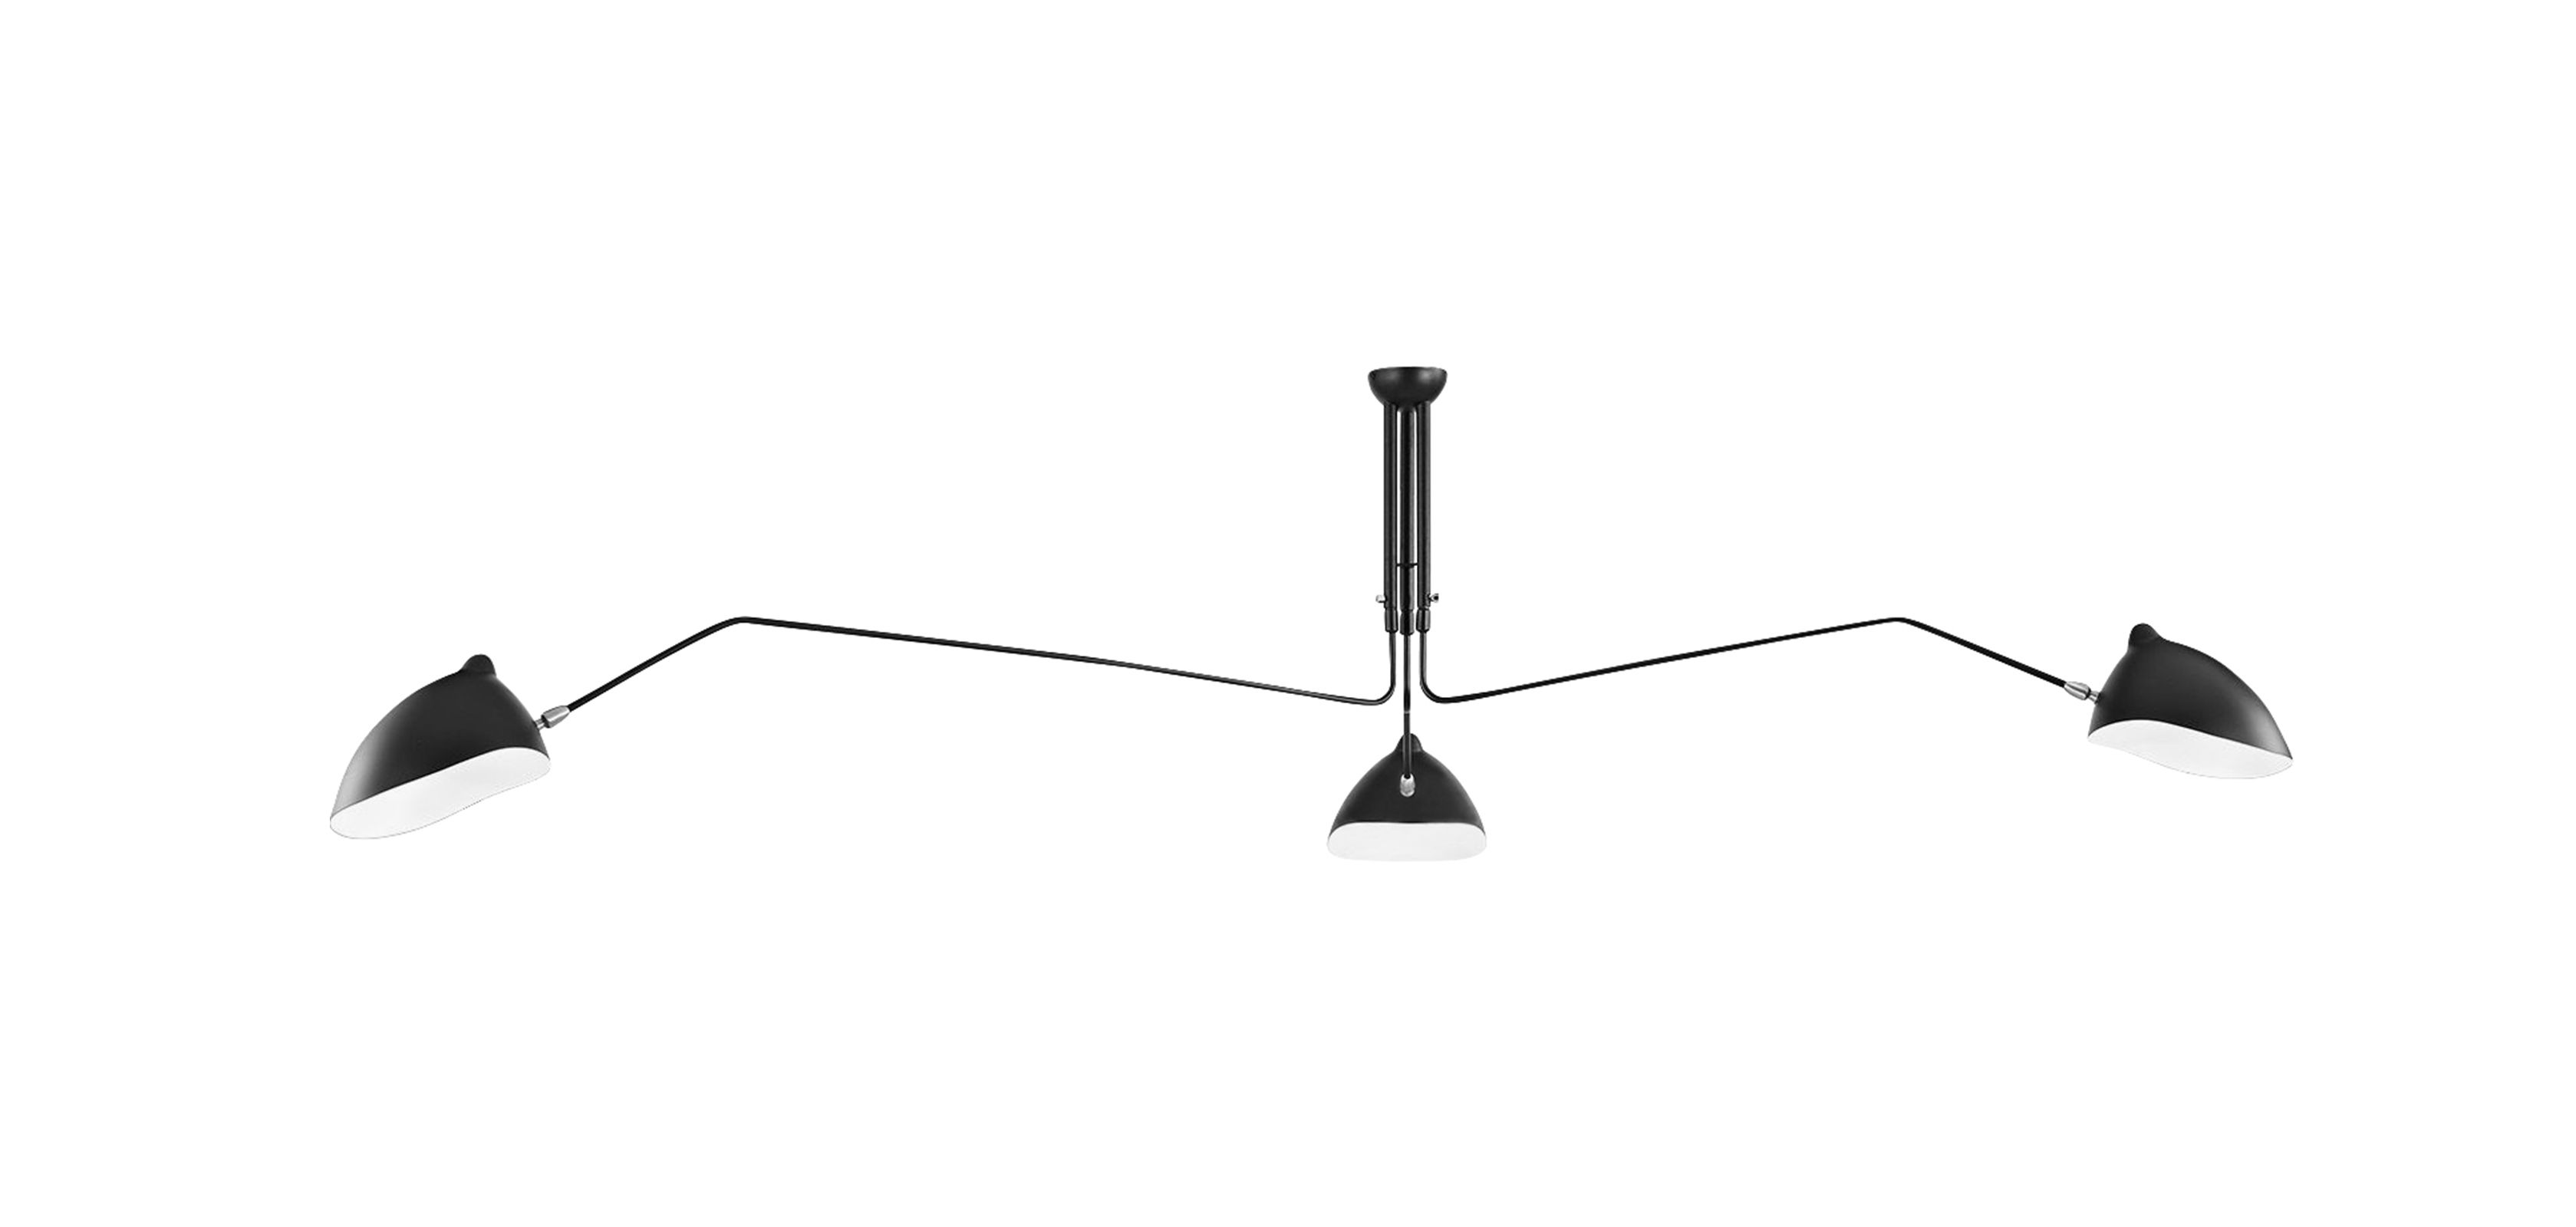 lampe suspension mcl r1 serge mouille style pas cher. Black Bedroom Furniture Sets. Home Design Ideas